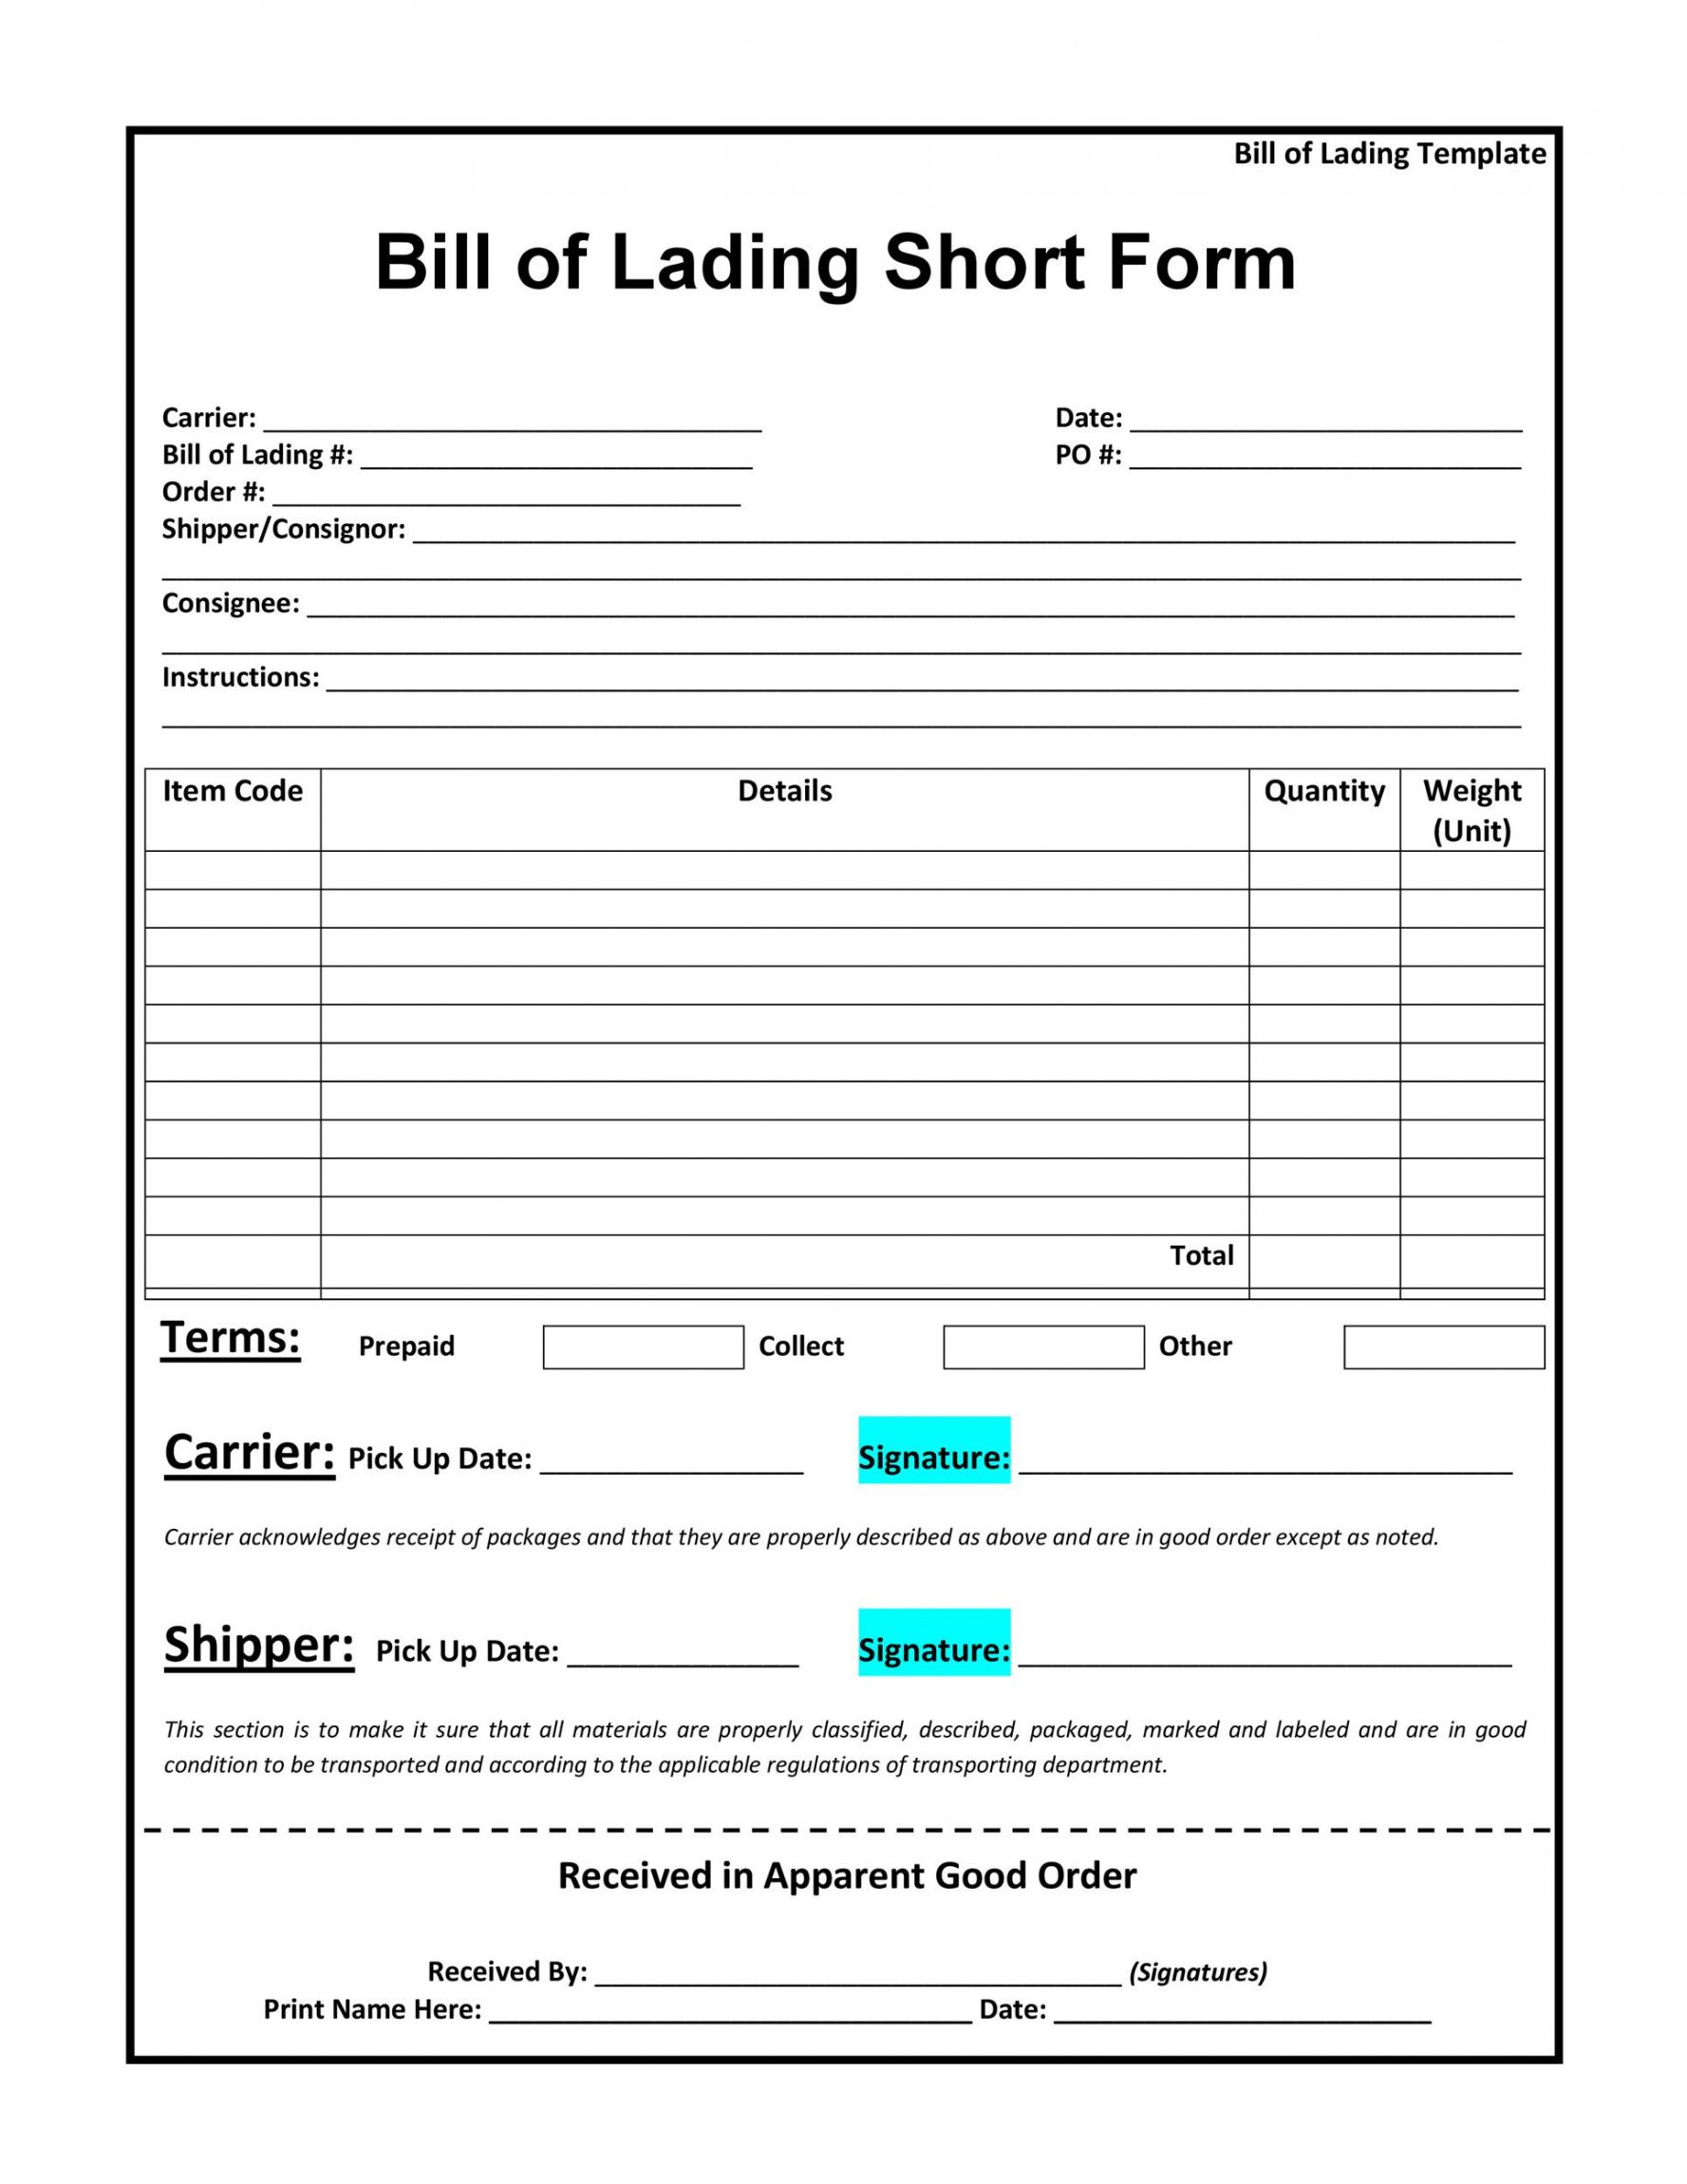 40 free bill of lading forms & templates  templatelab commercial bill of lading template